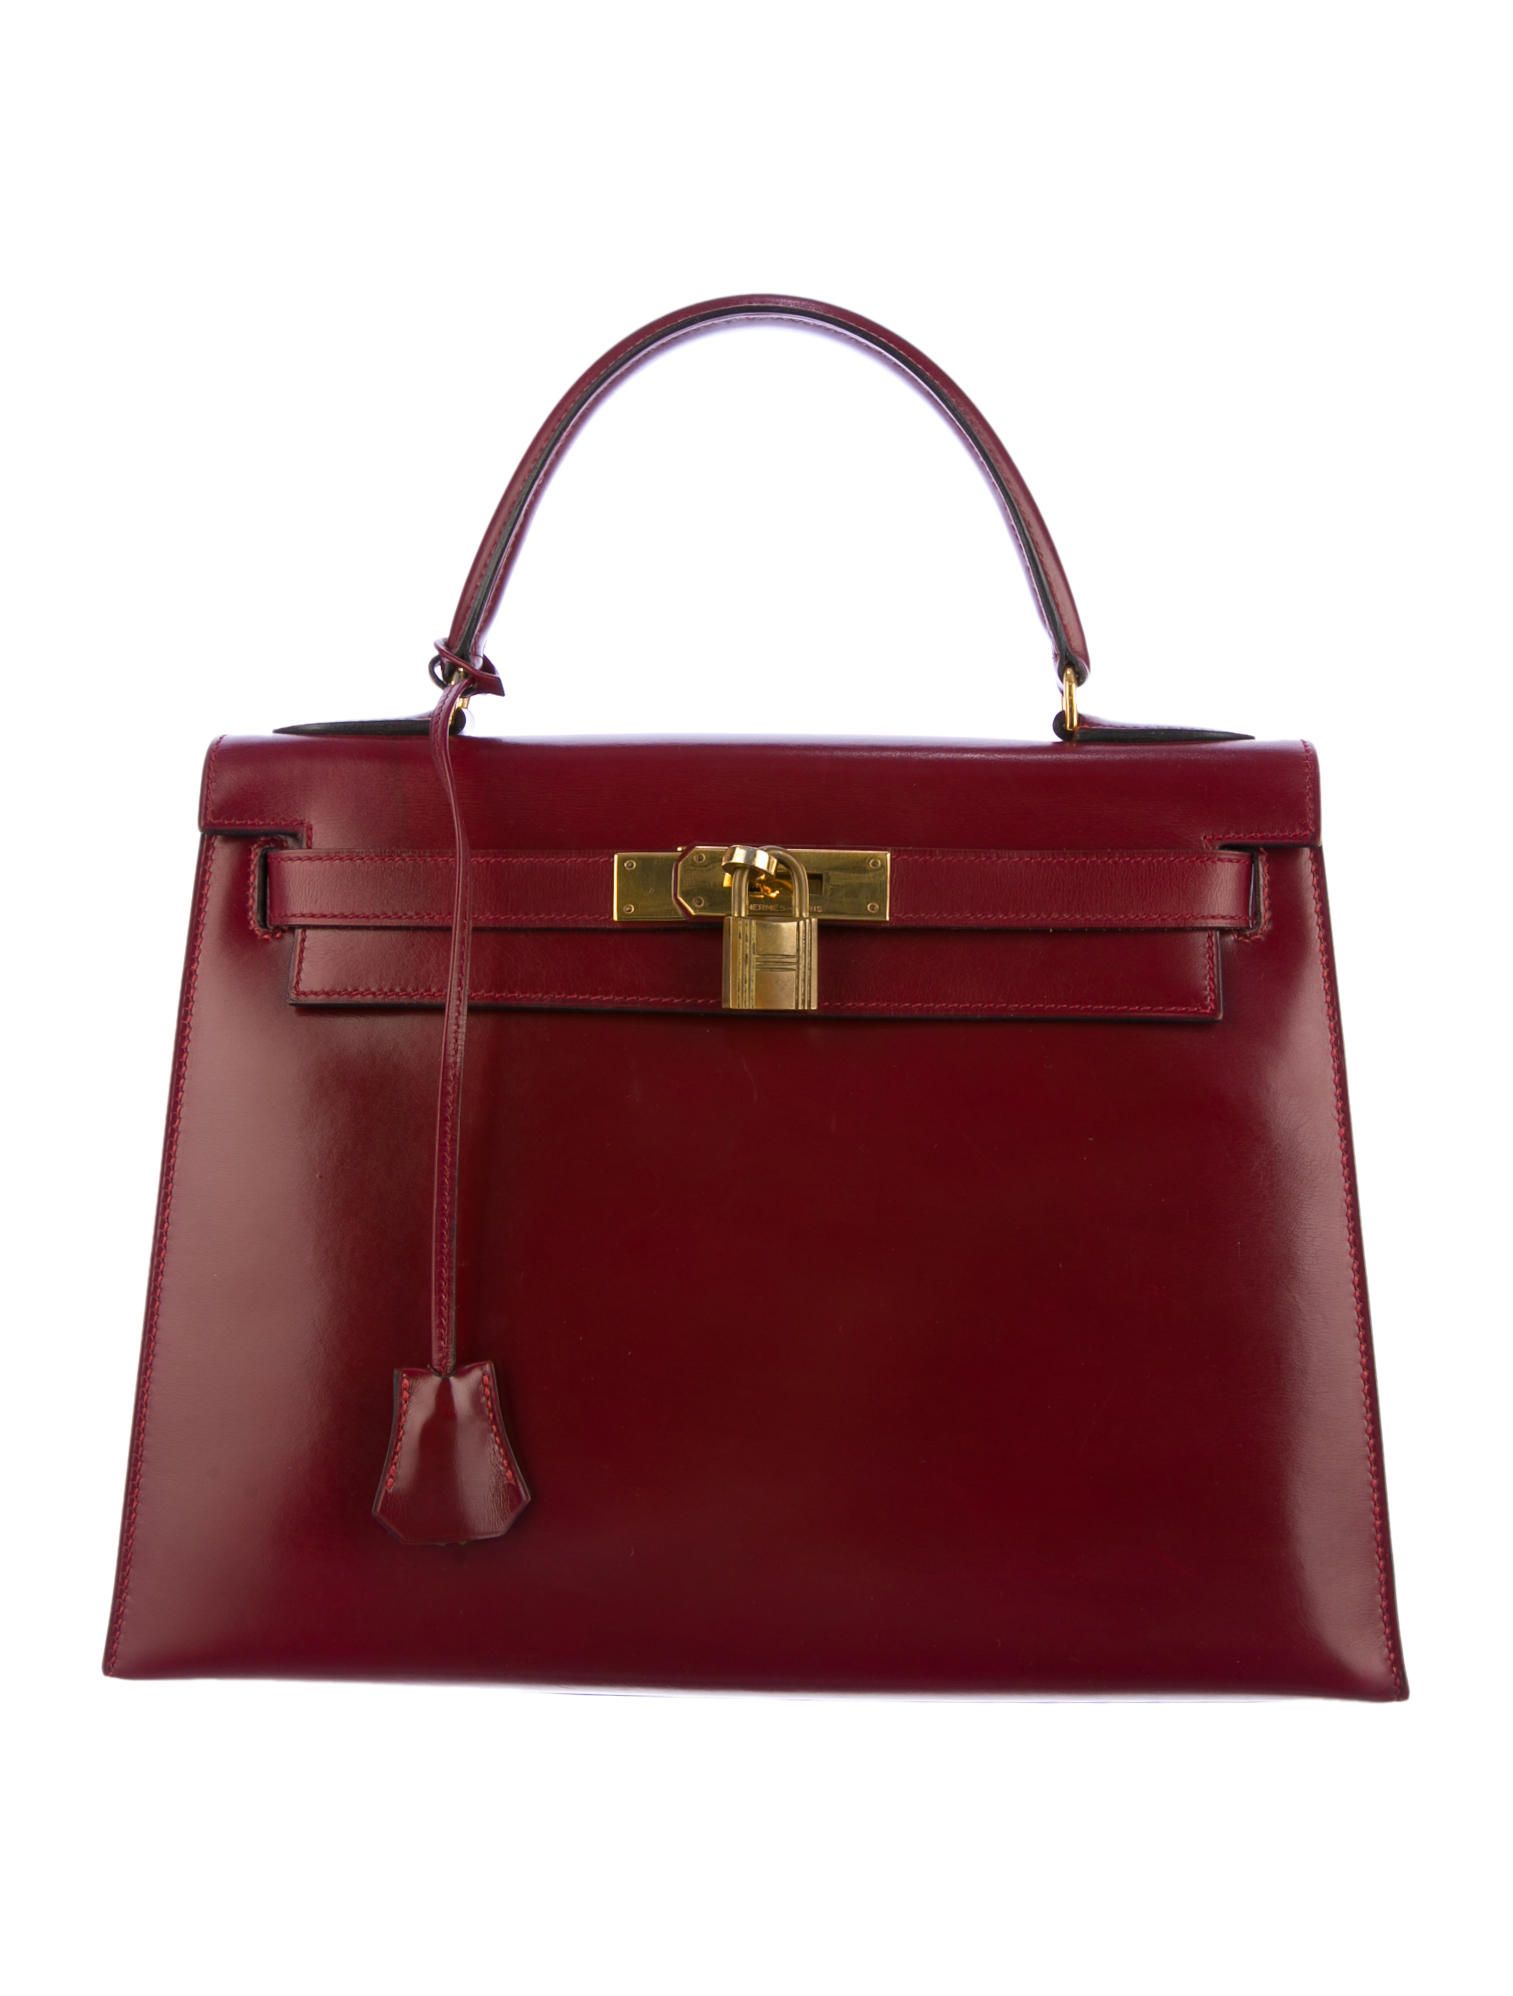 hot rouge h box leather hermès kelly 28 with gold tone hardware rolled top  handle a5483 26d6e4ac2f167